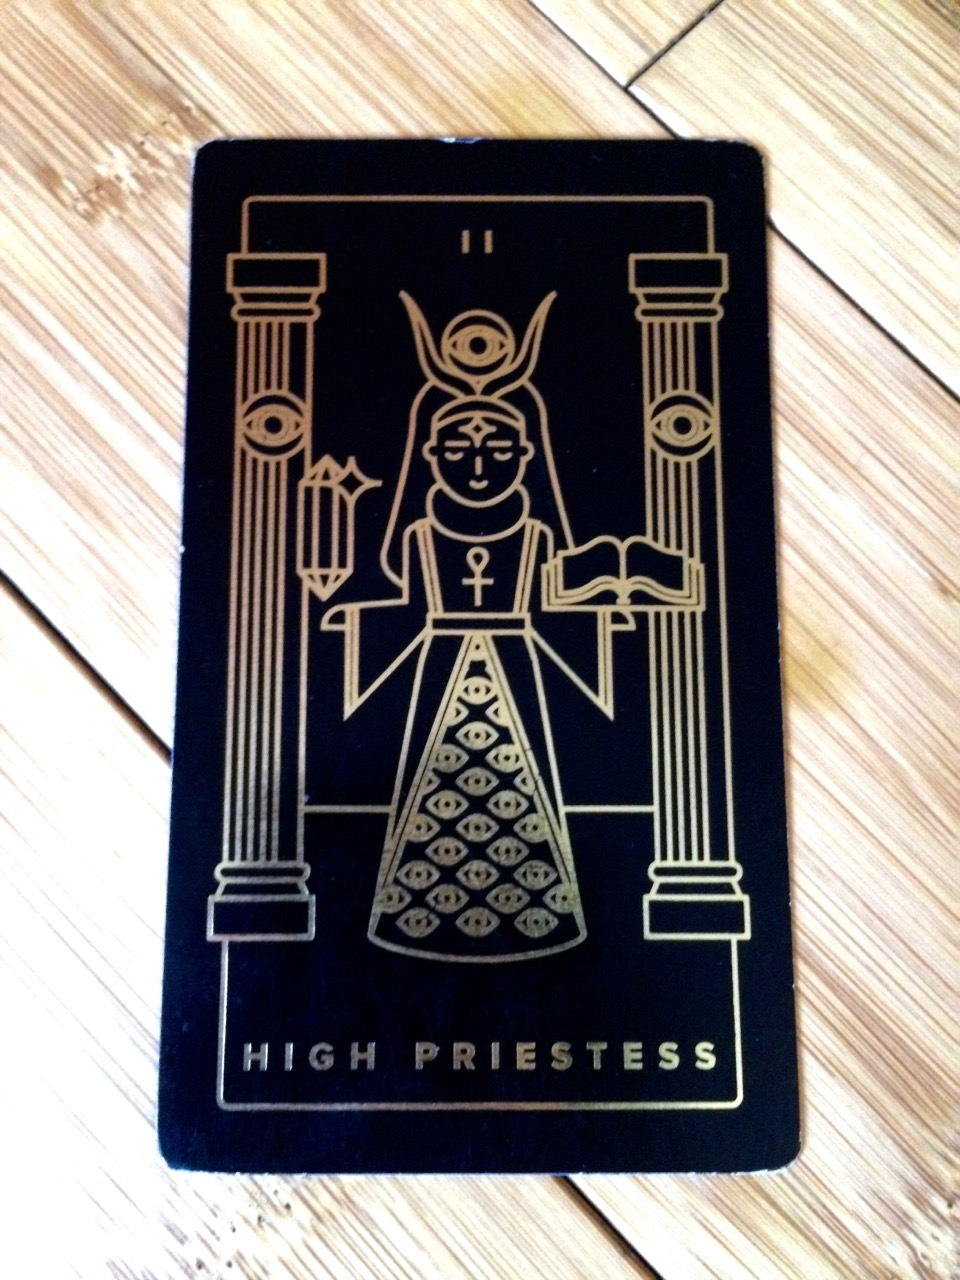 High Priestess,  Golden Thread Tarot